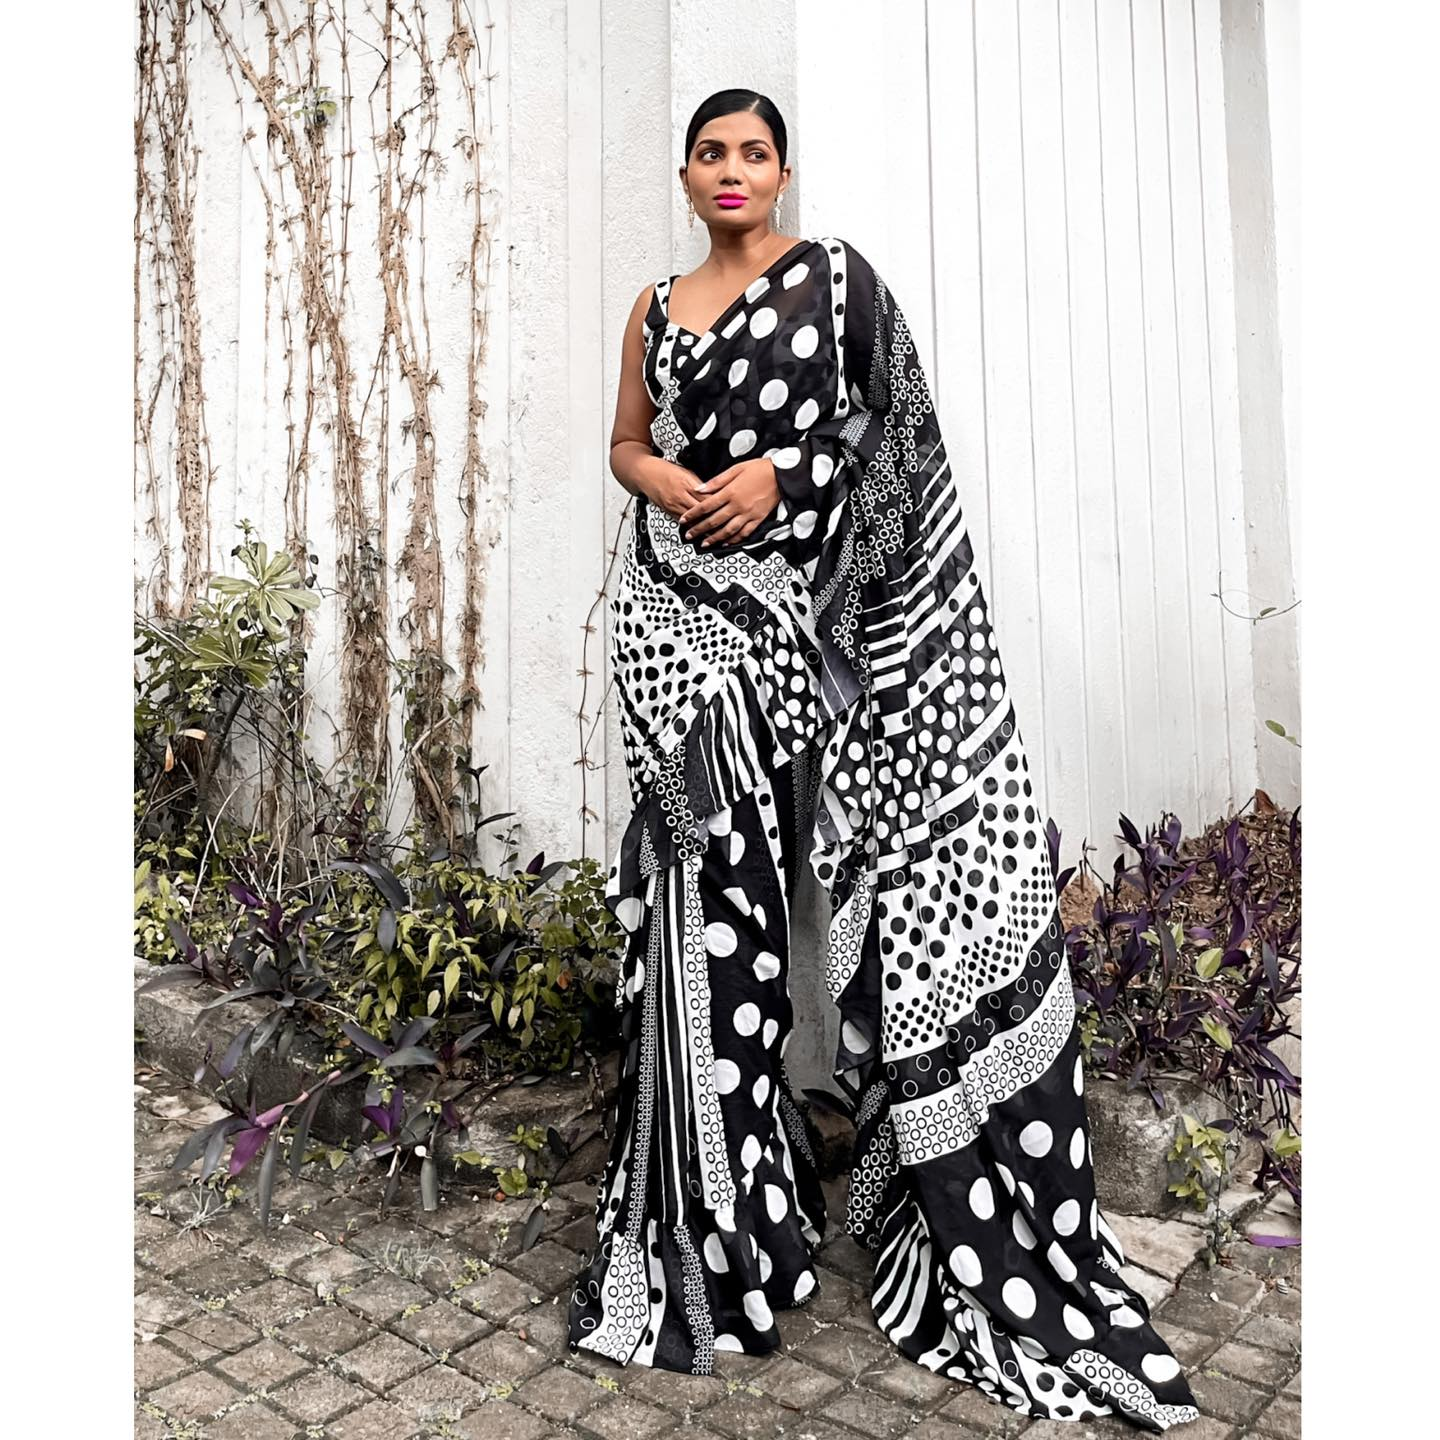 RETRO  This is a stunning printed georgette ruffle sari for that retro vibe. It's light weight and easy to drape. The blouse is a black raw silk. 2021-08-05